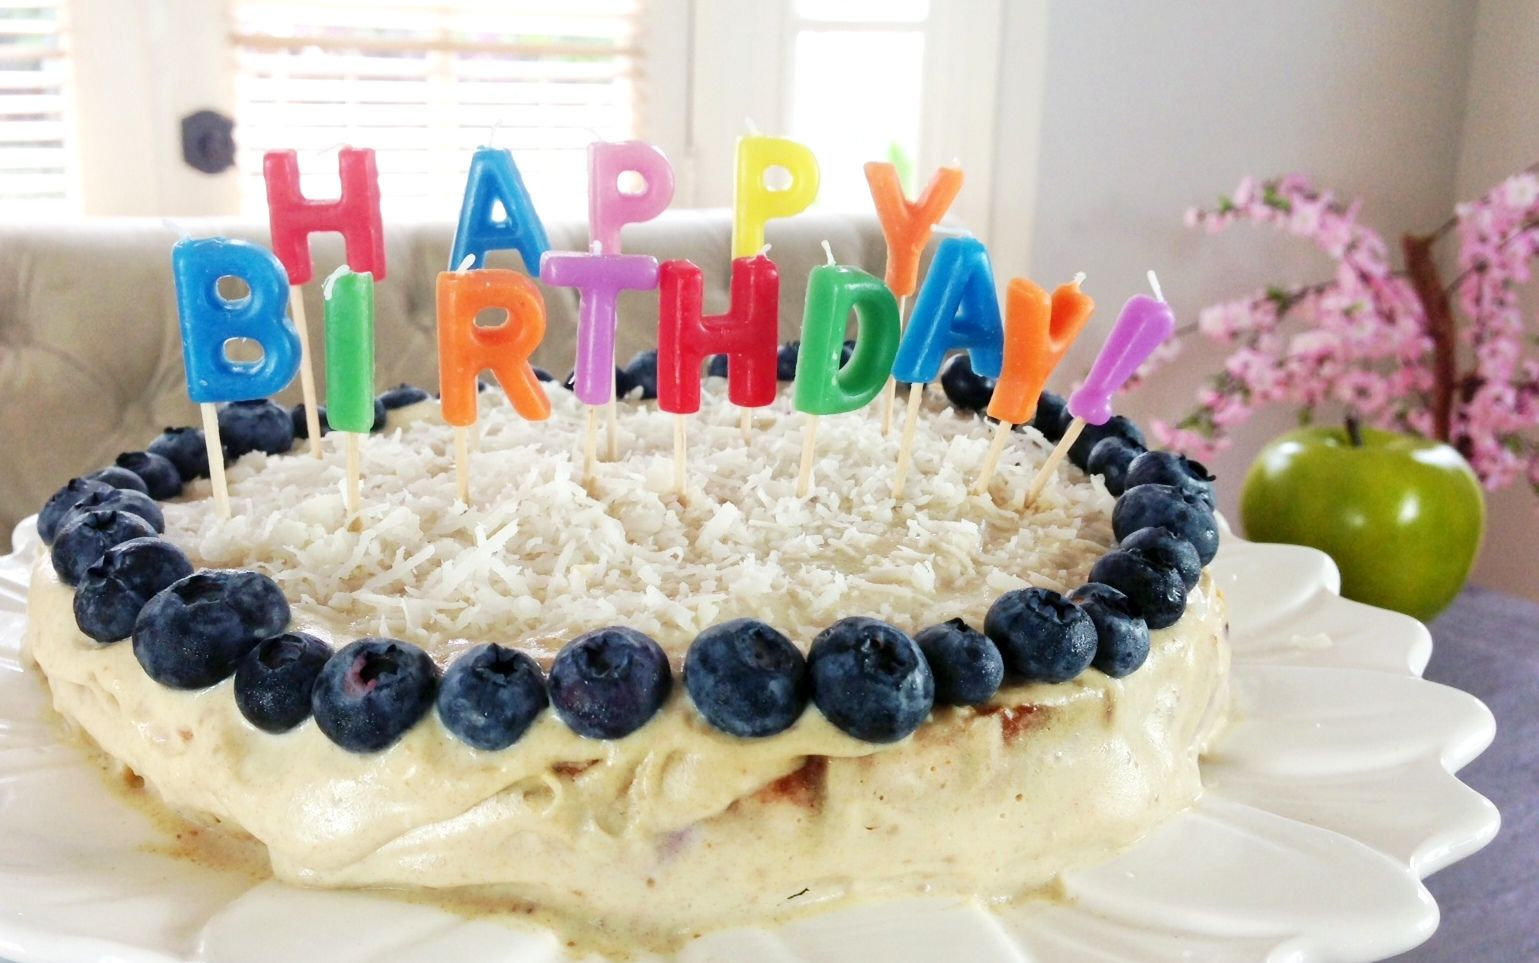 Low calorie and healthy blueberrylemon birthday cake Fit snacks